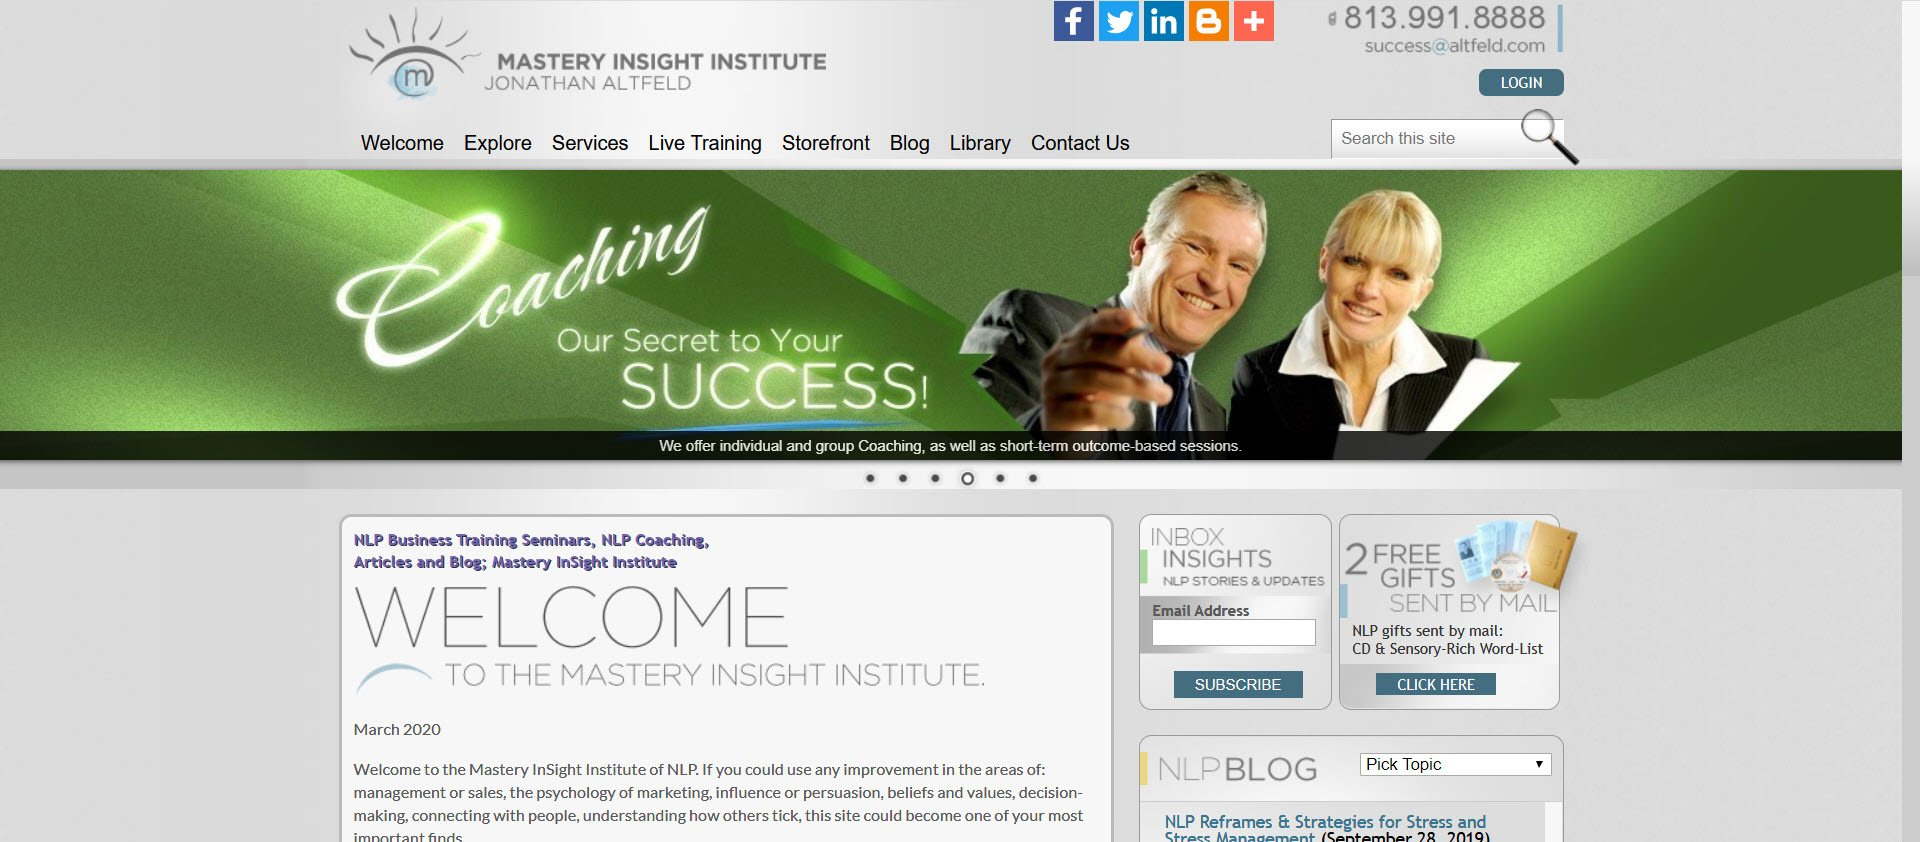 Best Personal Development Affiliate Programs - Mastery Insight Institutes